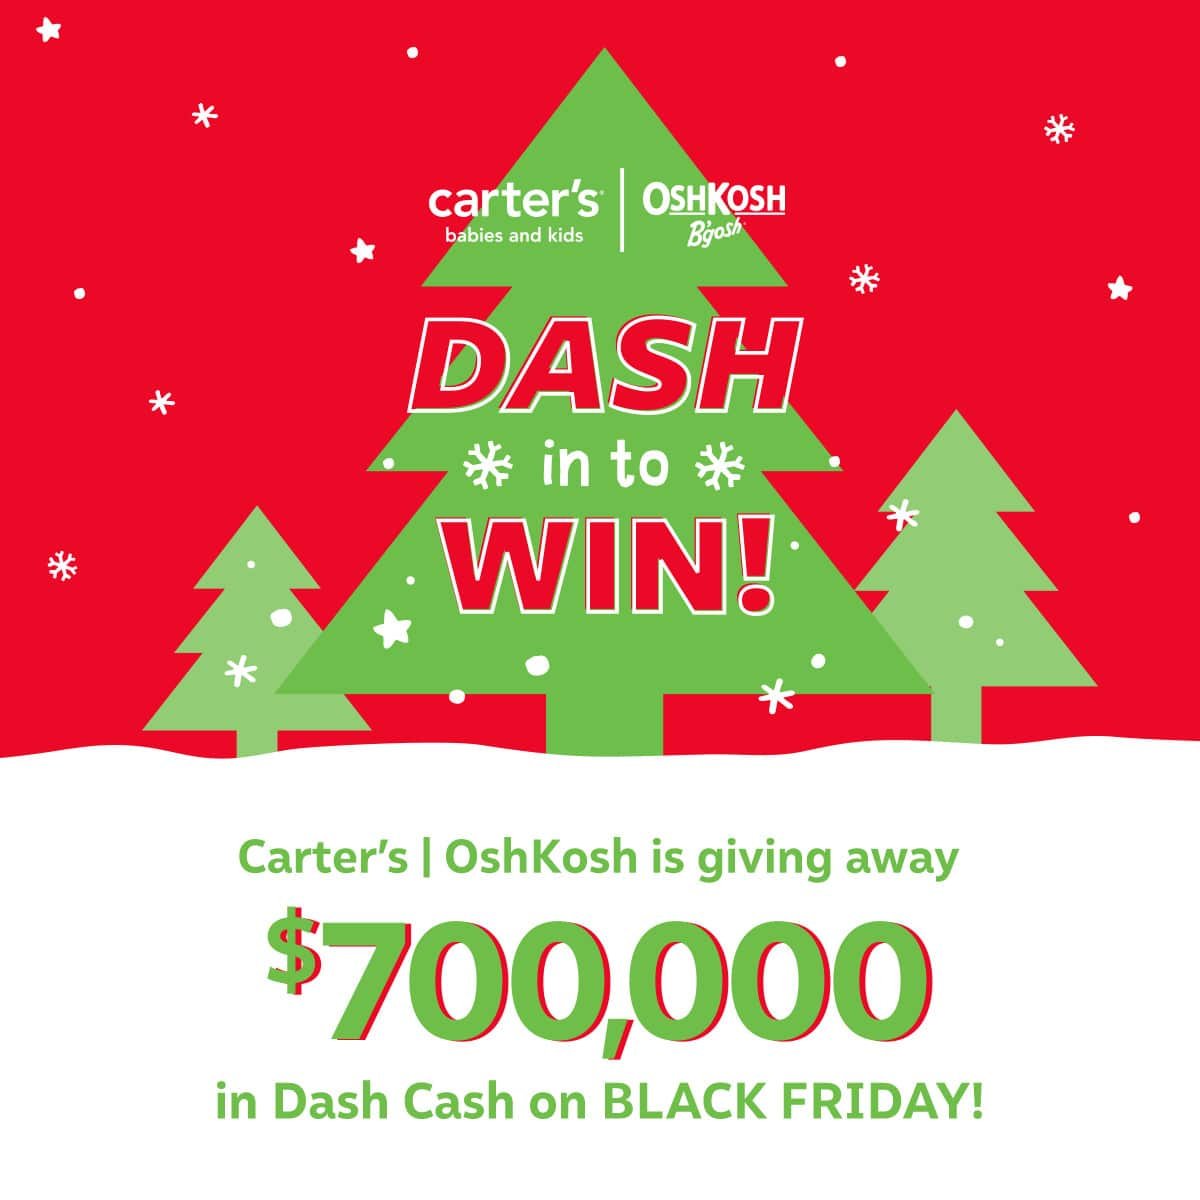 carters_1119_bloggerdisplay_dashintowin